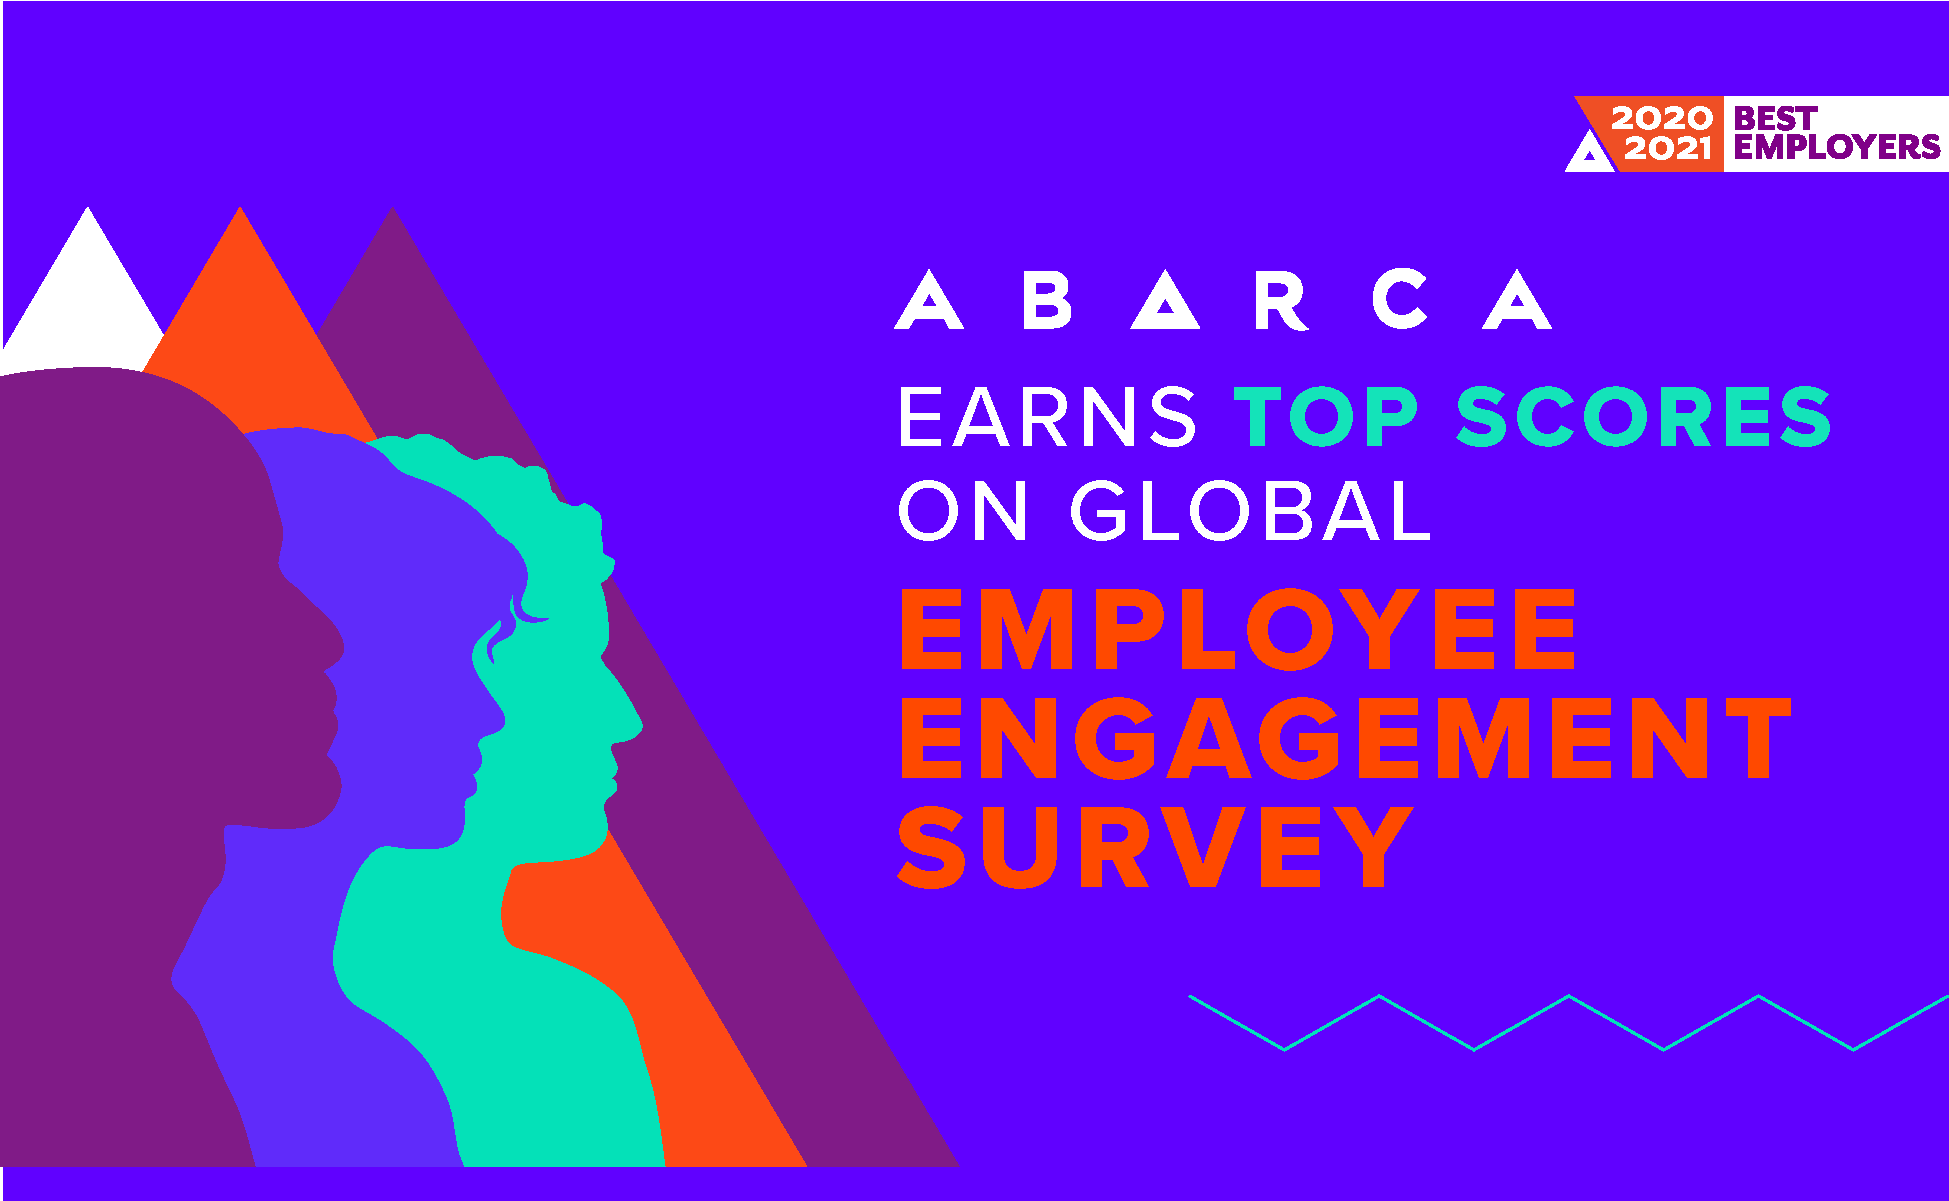 Abarca earns top scores on Kincentric's Global Employee Engagement Survey